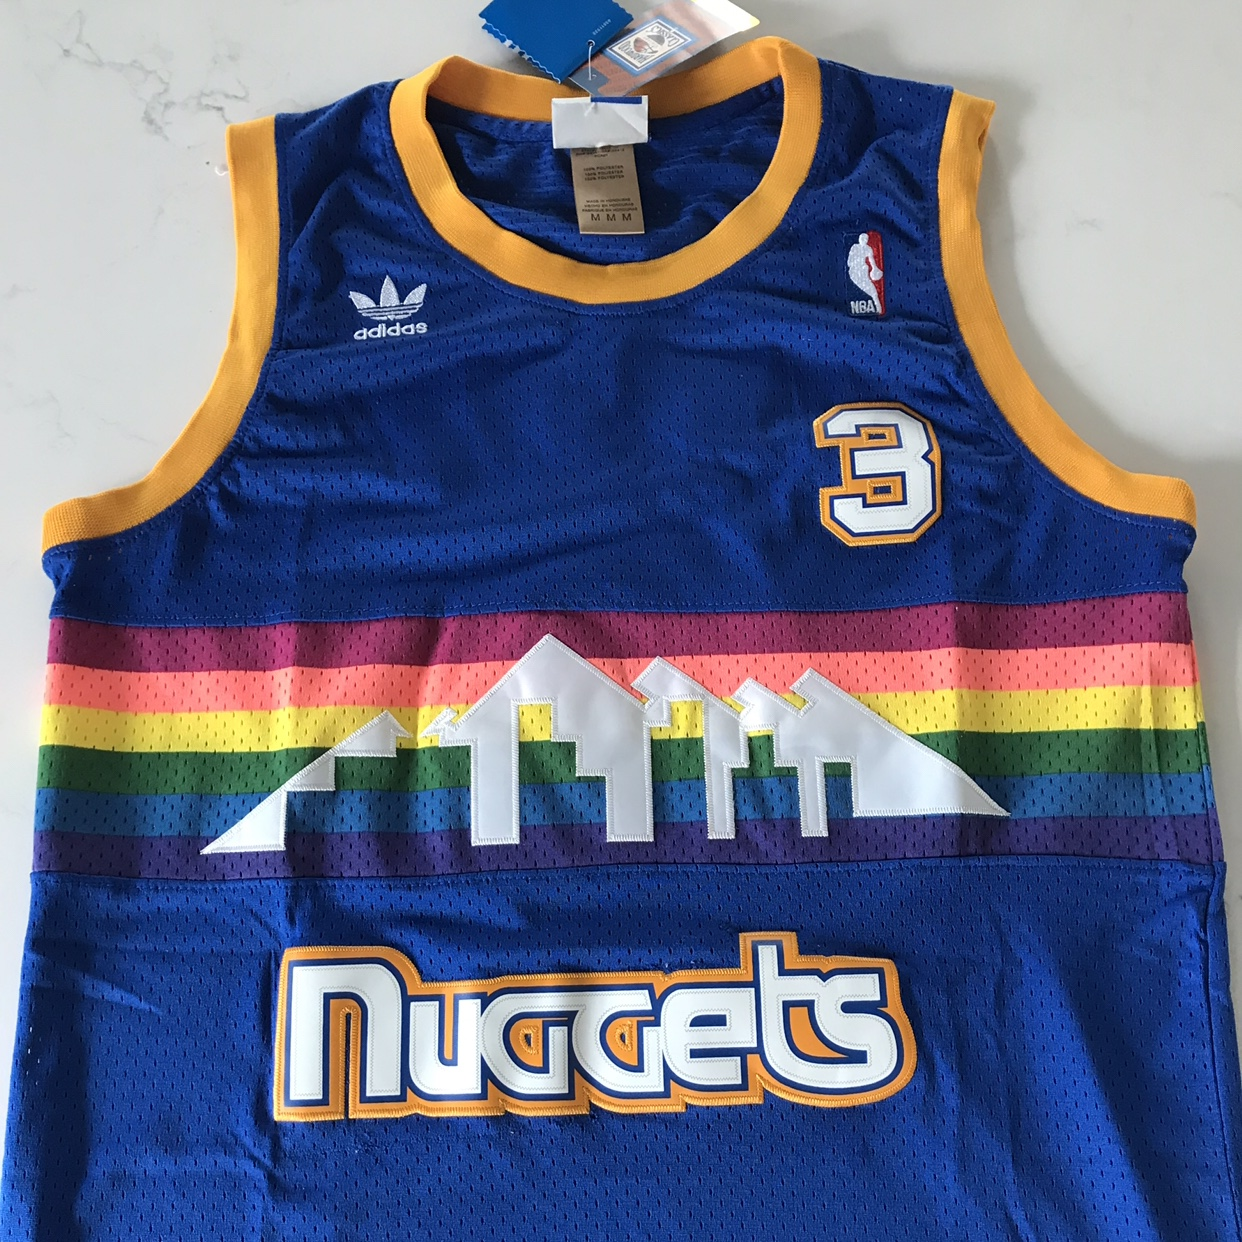 buy online 95f1a d3441 Allen Iverson Denver Nuggets Blue Rainbow Throwback ...